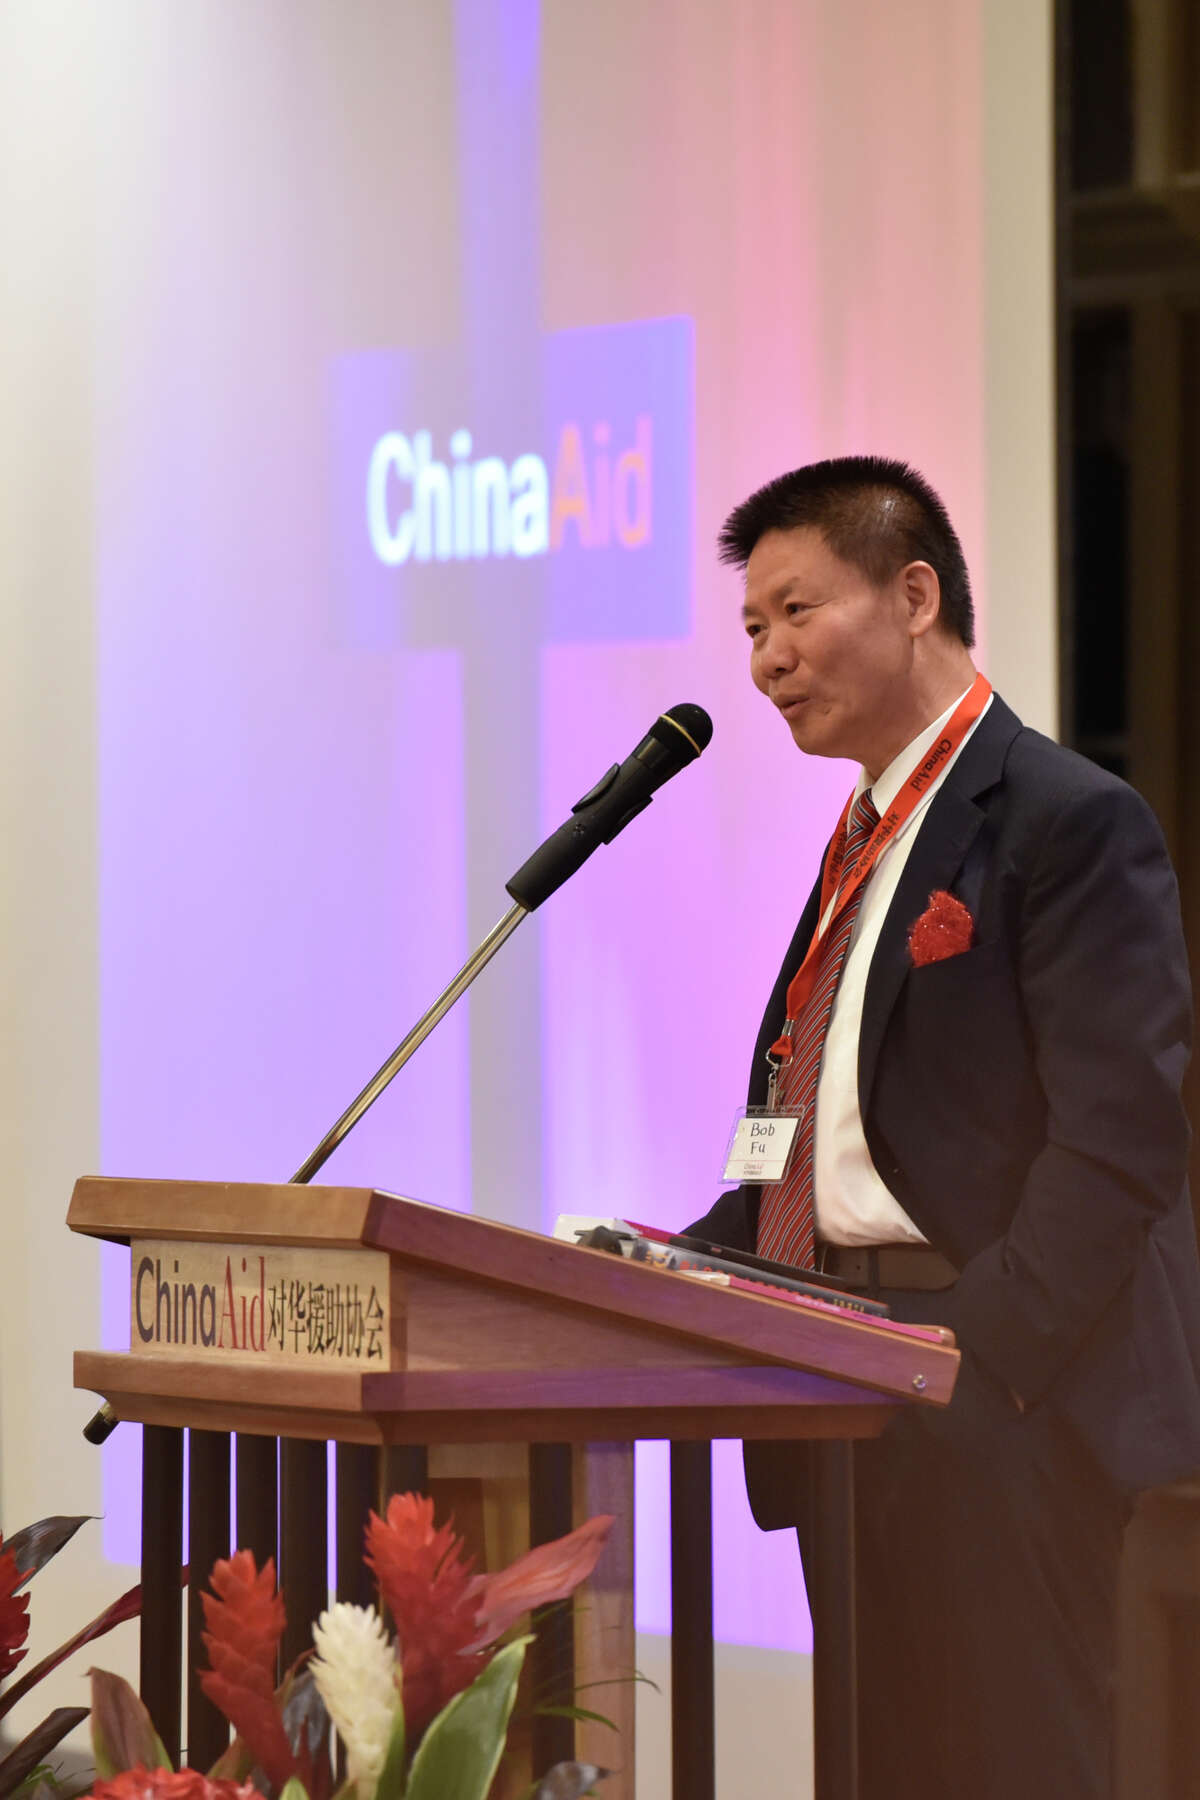 Dr. Bob Fu, Founder and President of the ChinaAid Association, speaks during the ChinaAid banquet April 25, 2019, at Midland Country Club. Protestors showed up outside of Fu's house on Monday, Oct. 5, 2020.